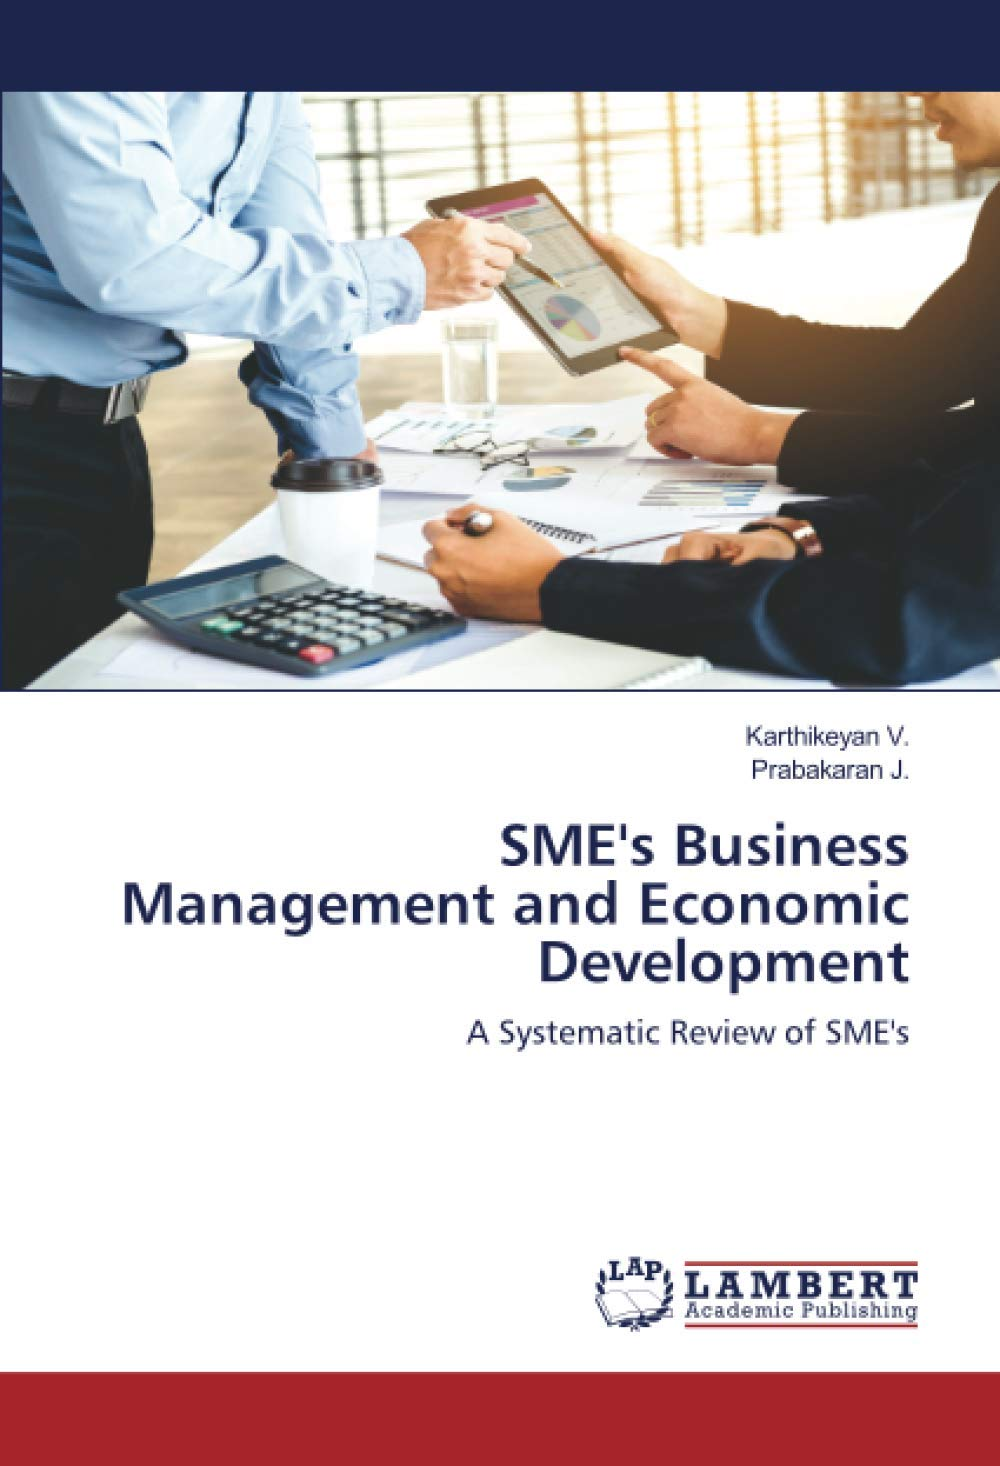 SME's Business Management and Economic Development: A Systematic Review of SME's